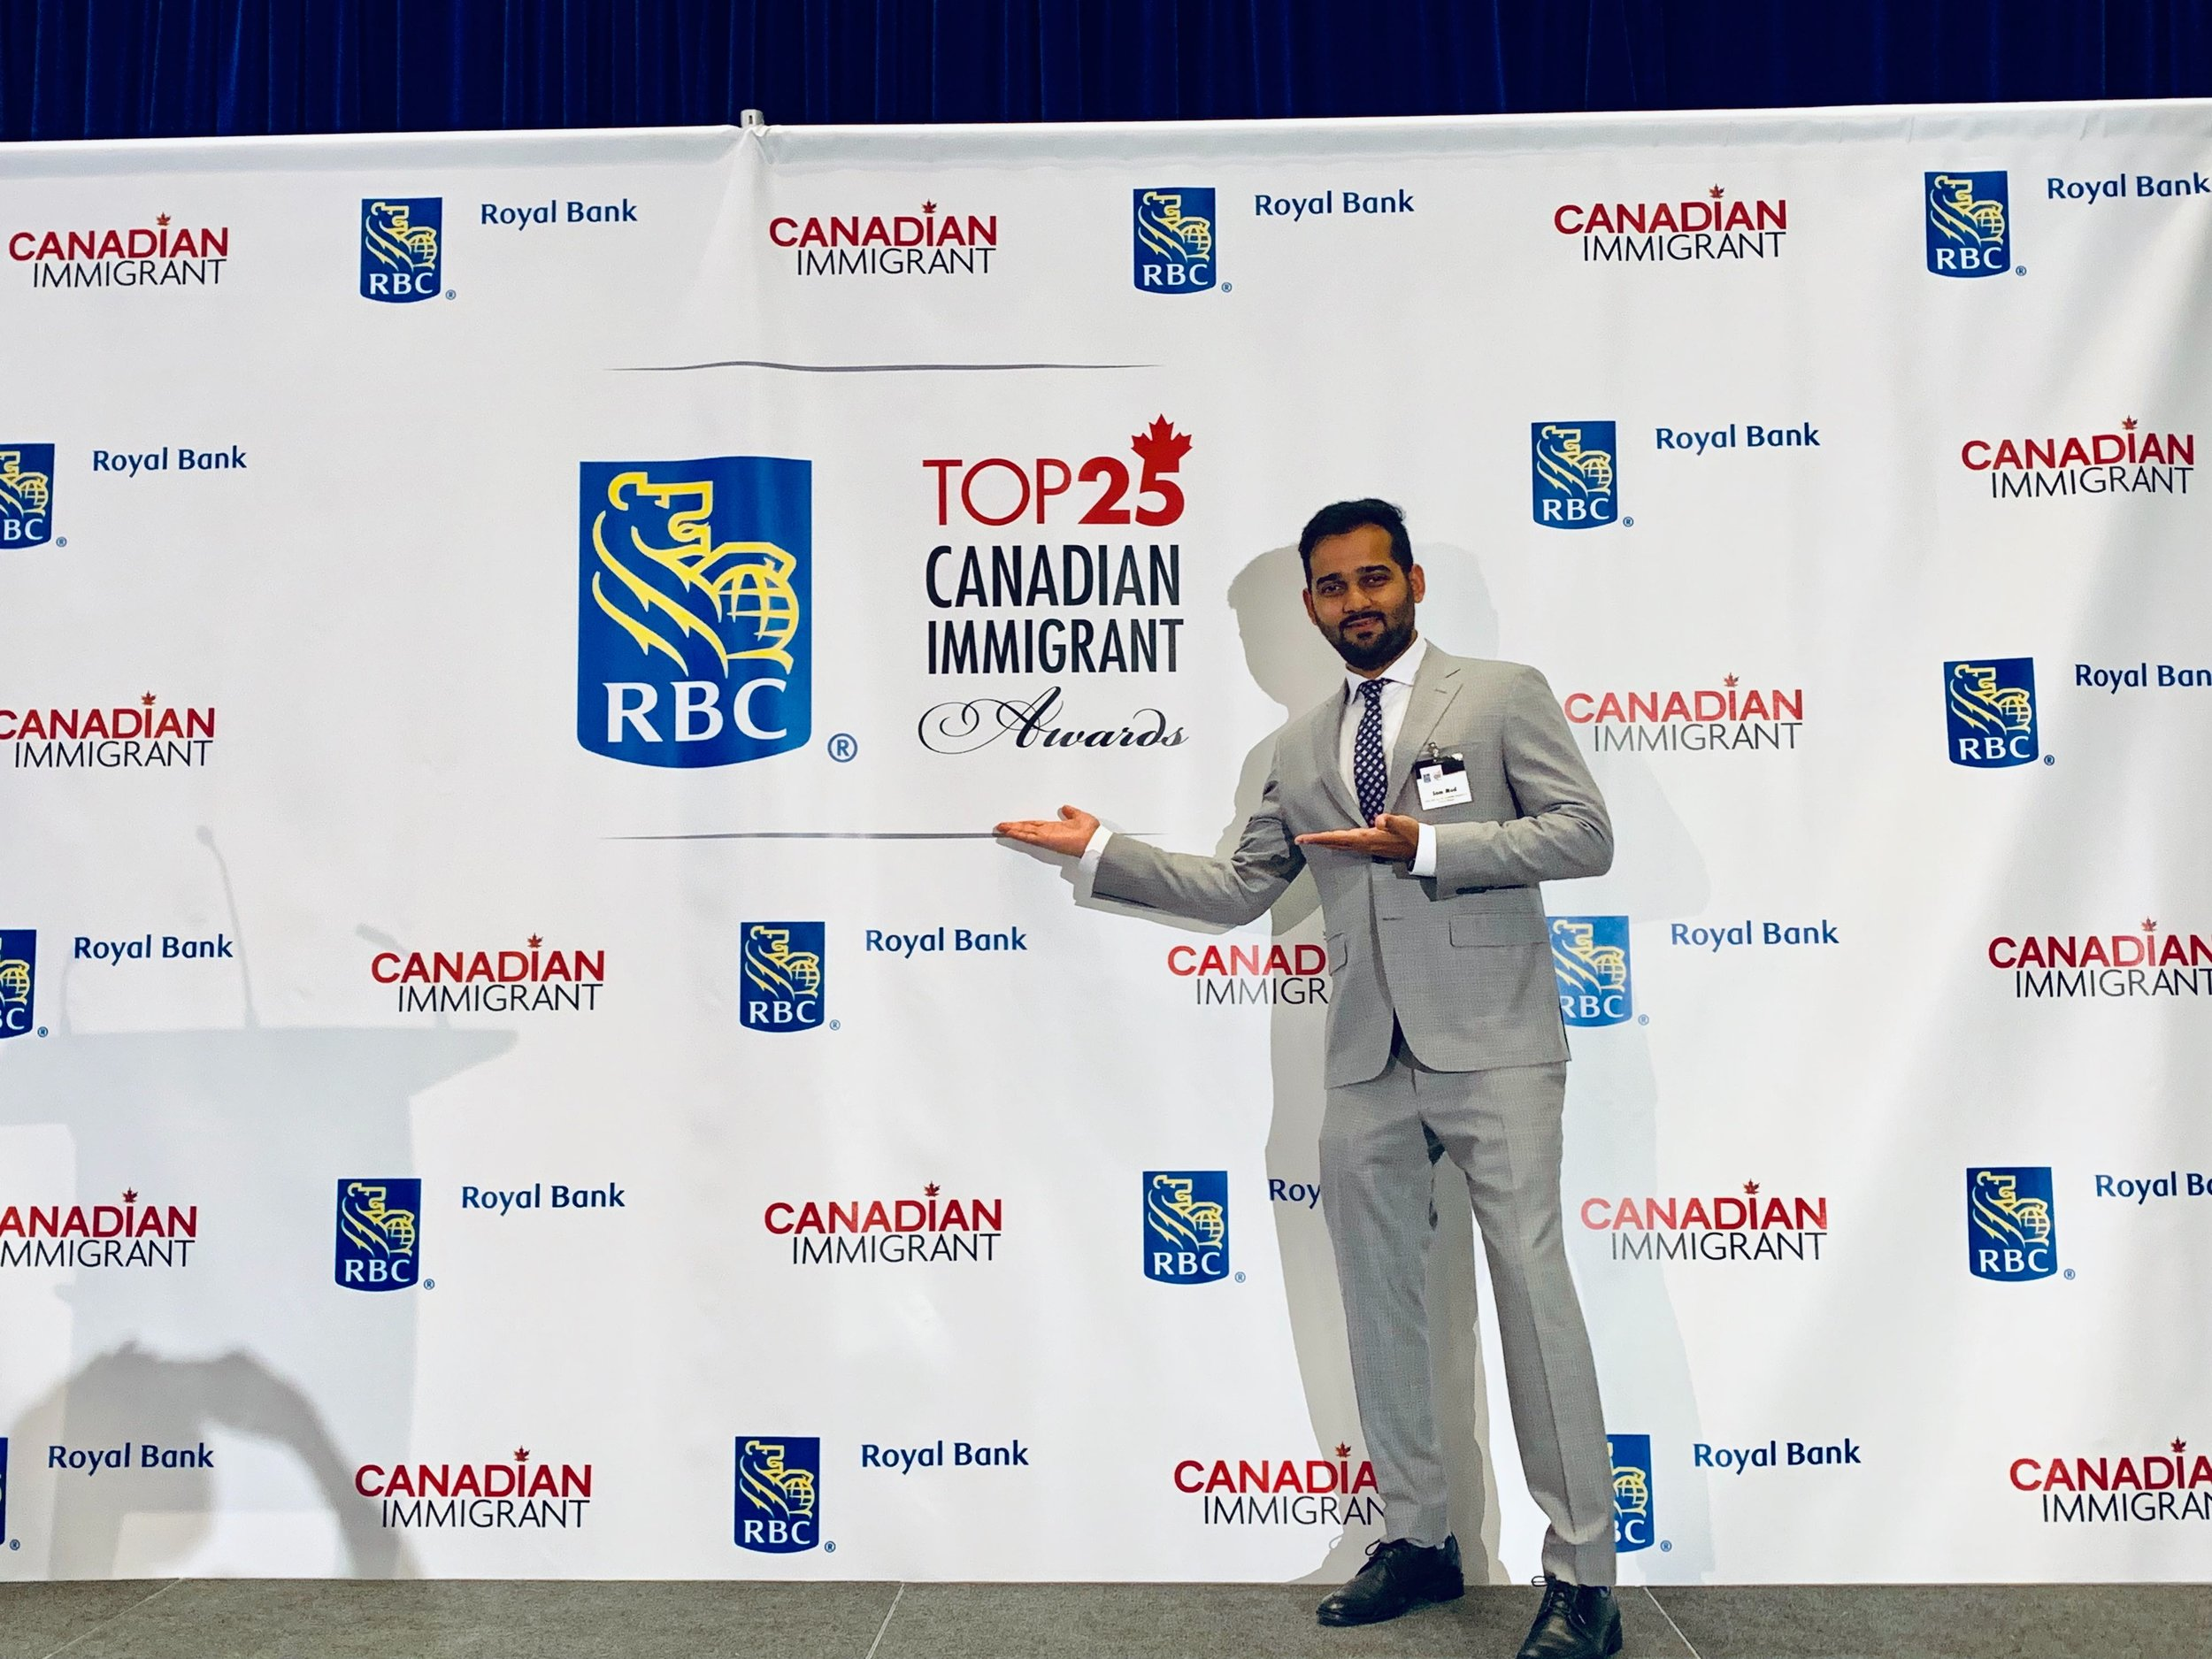 FreshWorks CEO at the RBC Top 25 Canadian Immigrant Awards in Toronto, ON on June 25, 2019.